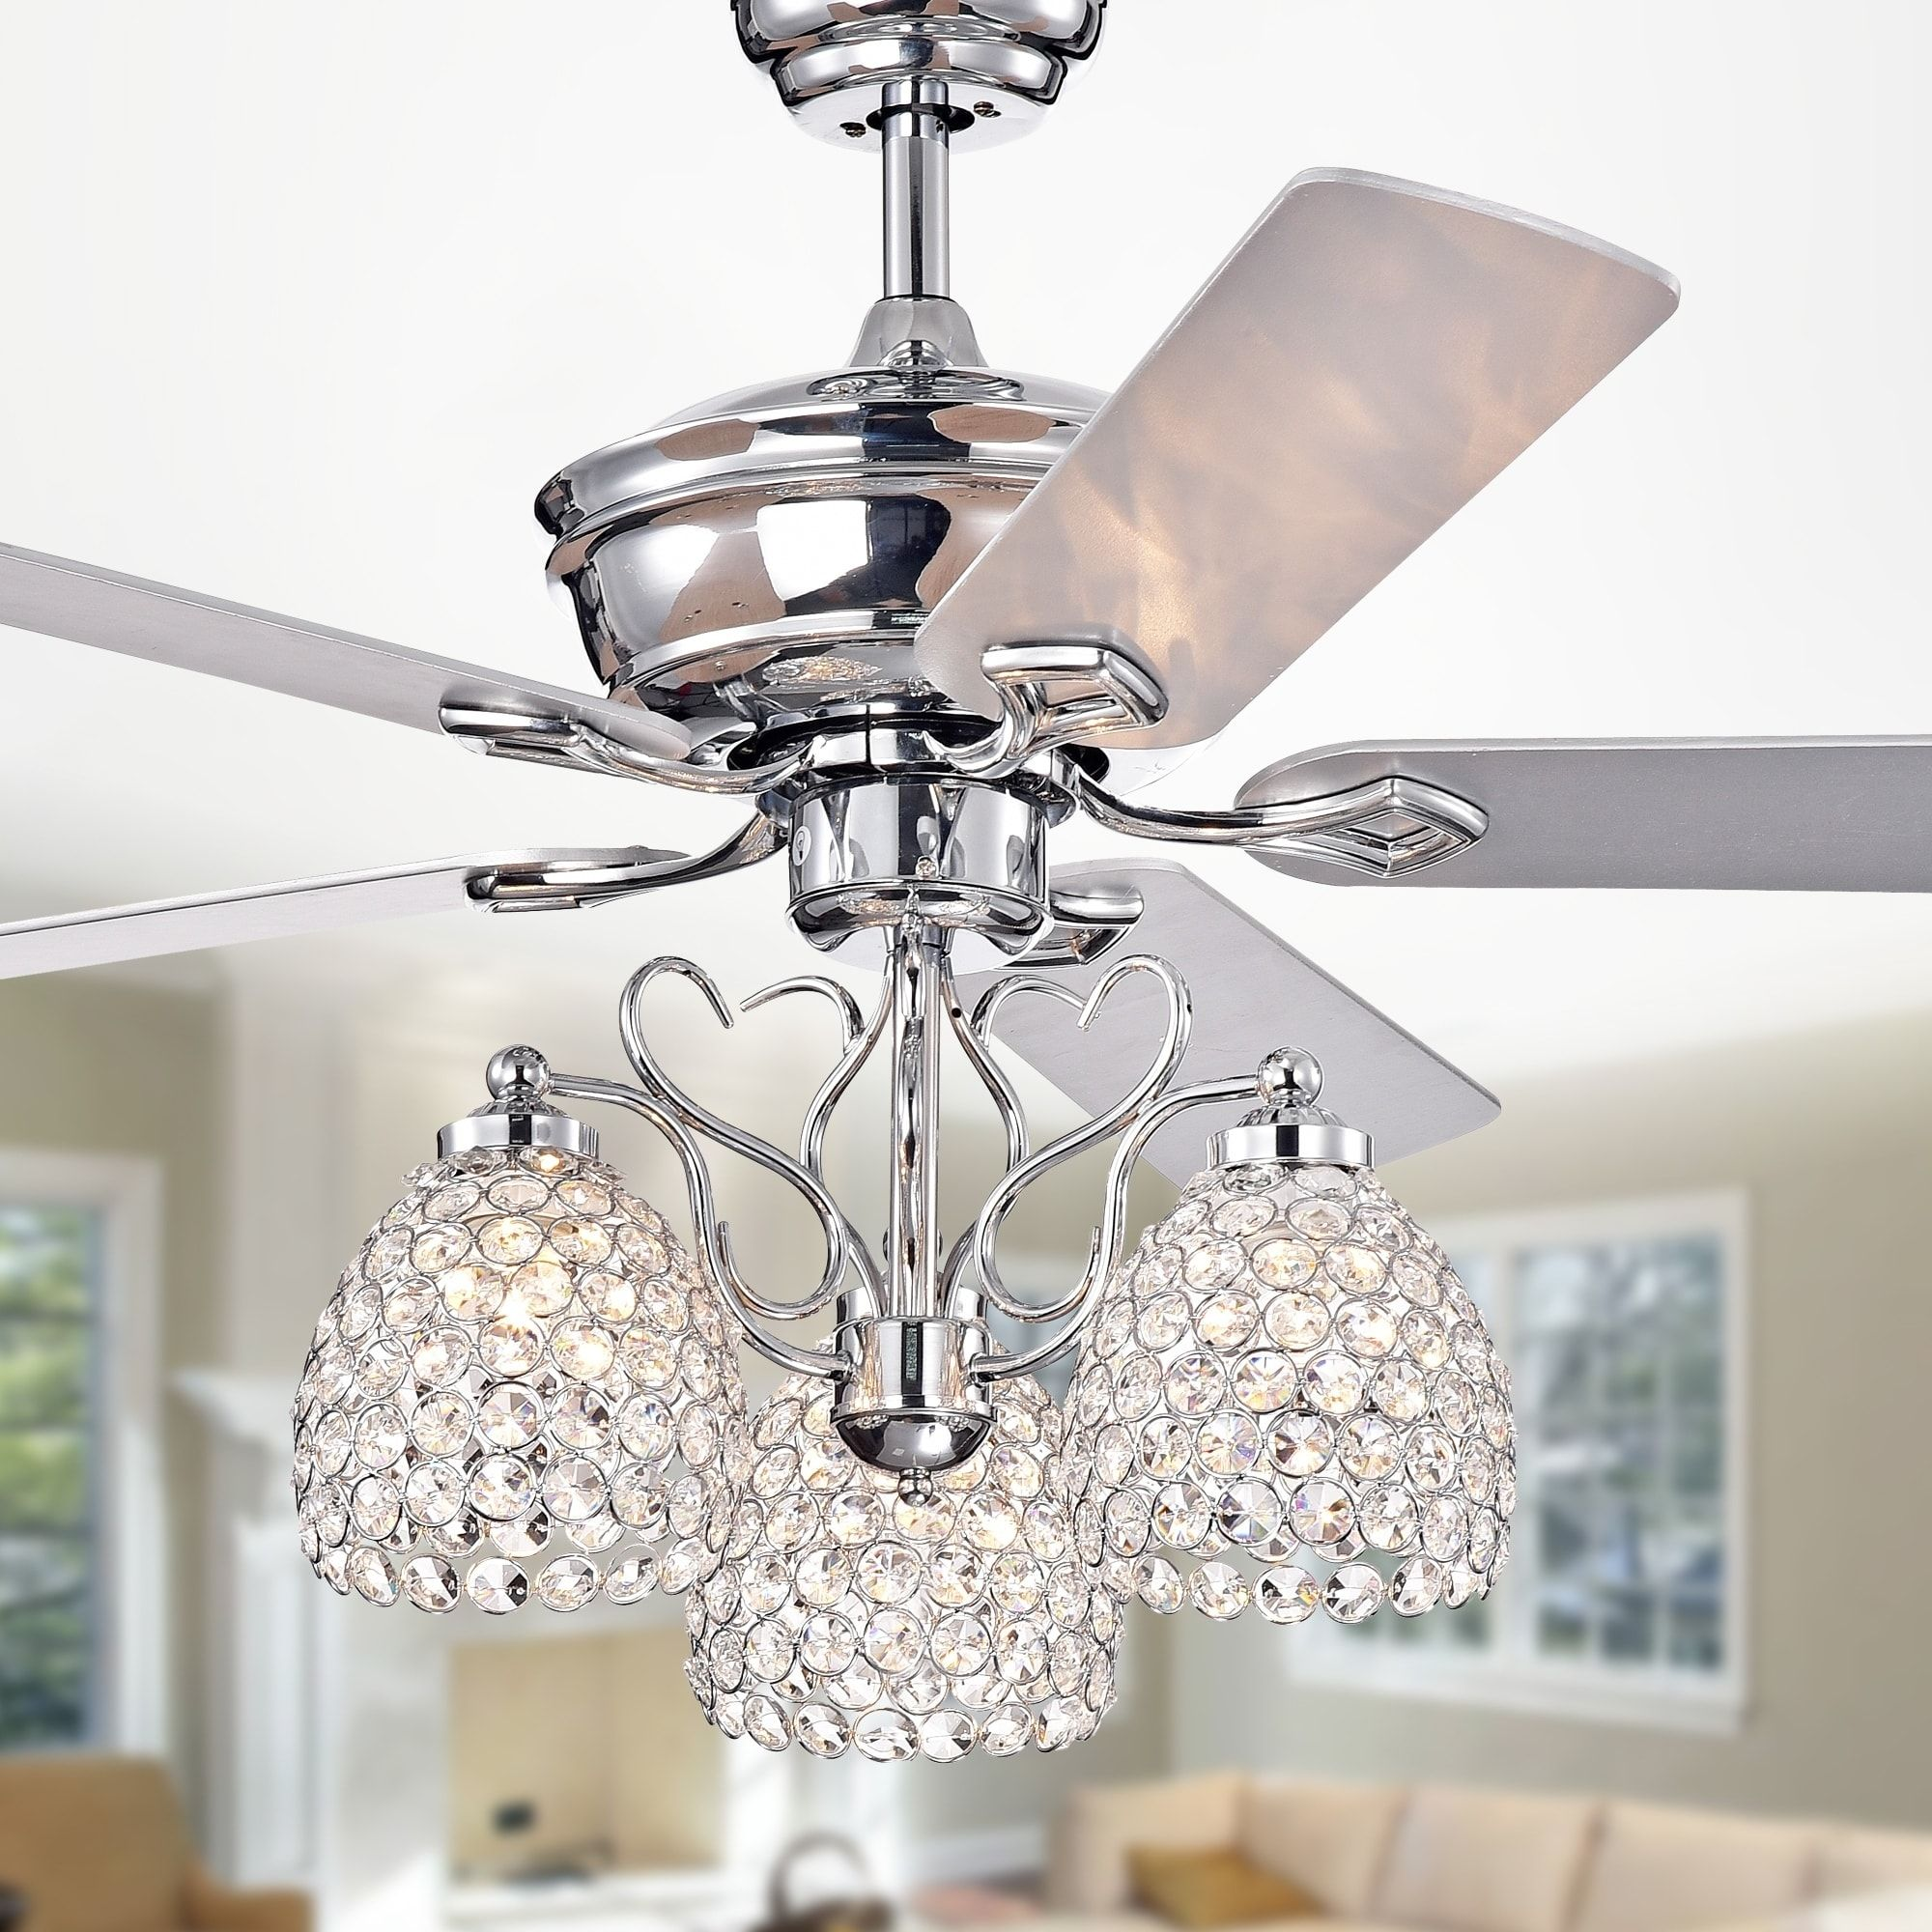 Boffen 52 Inch 3 Light Lighted Ceiling Fan With Crystal Cup Shades